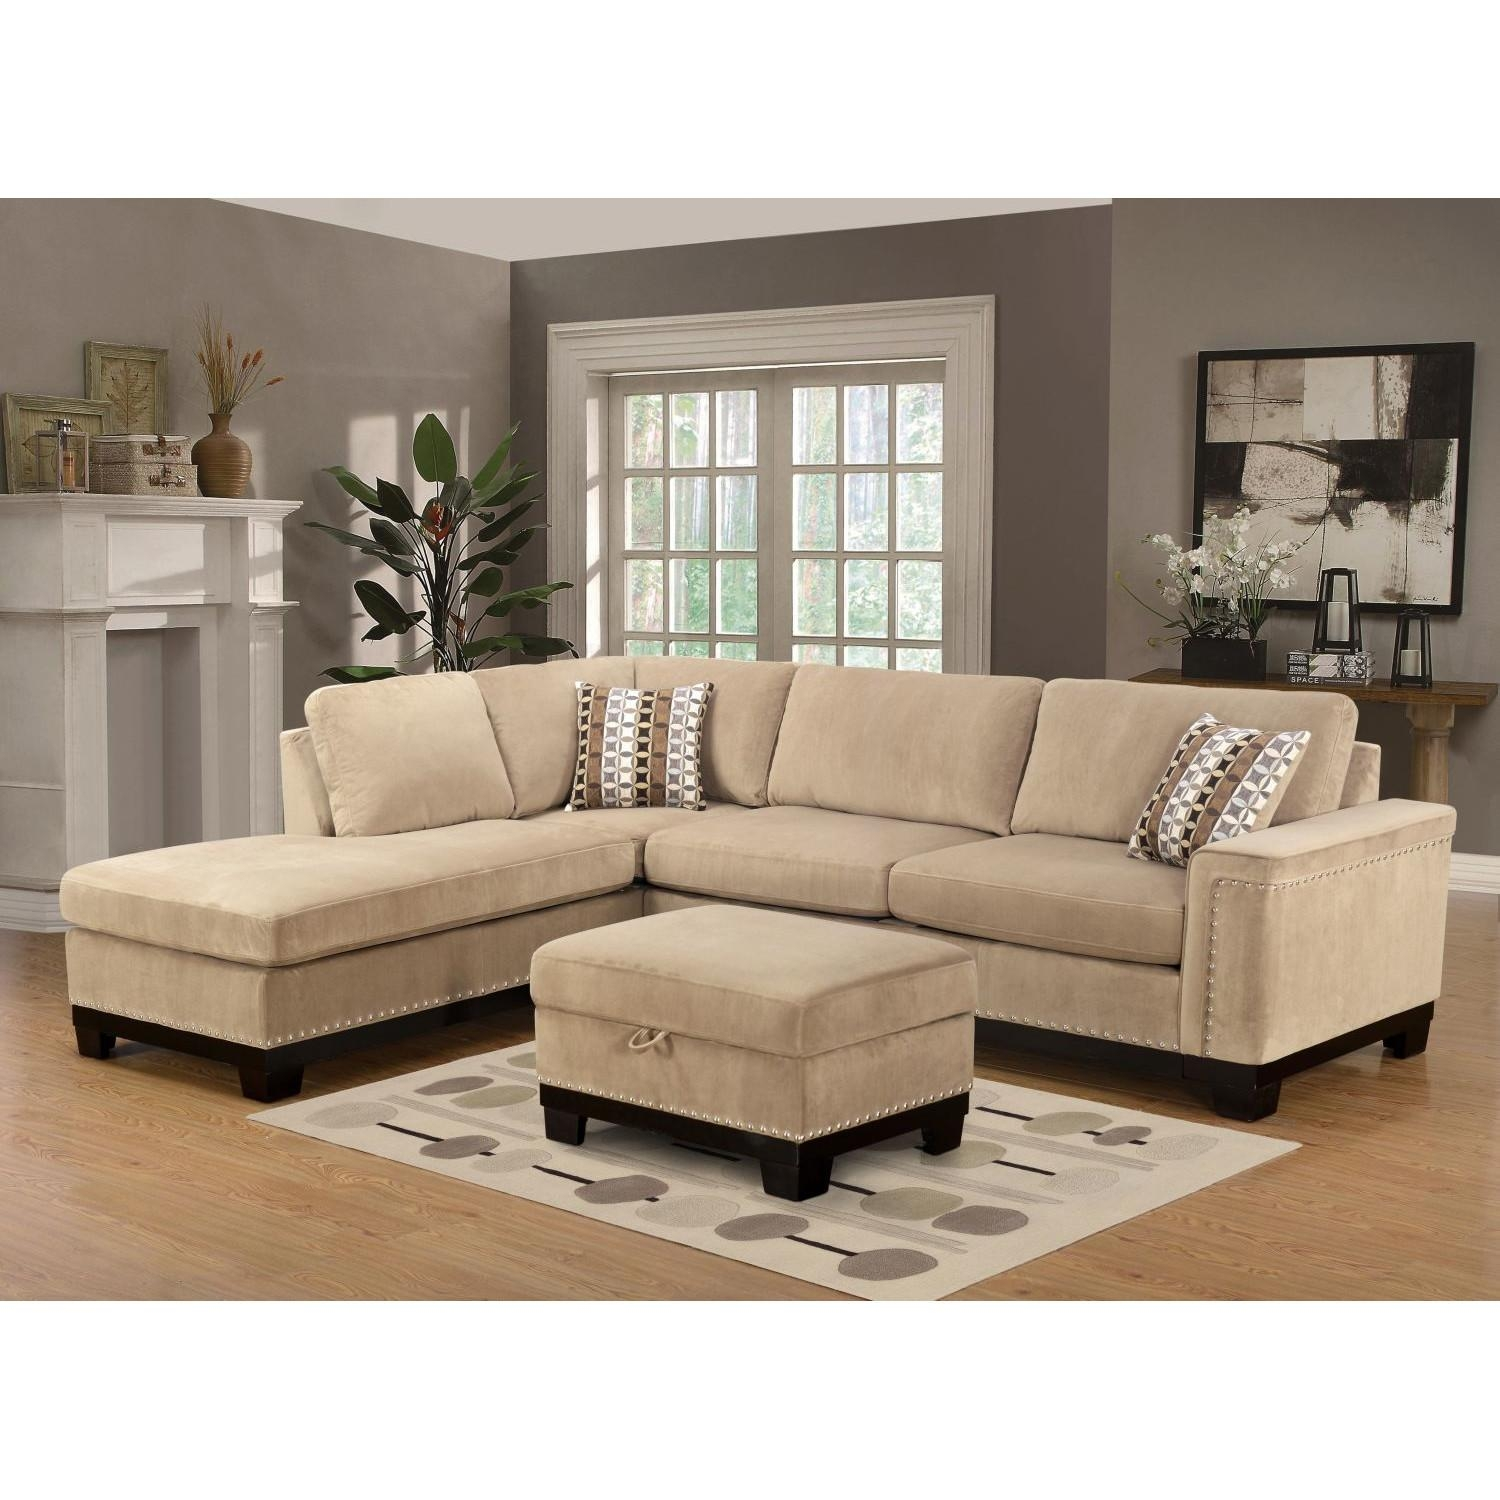 Furniture: Oversized Couch | Big Comfy Couches | Movie Pit Sofa For Big Comfy Sofas (Image 13 of 25)